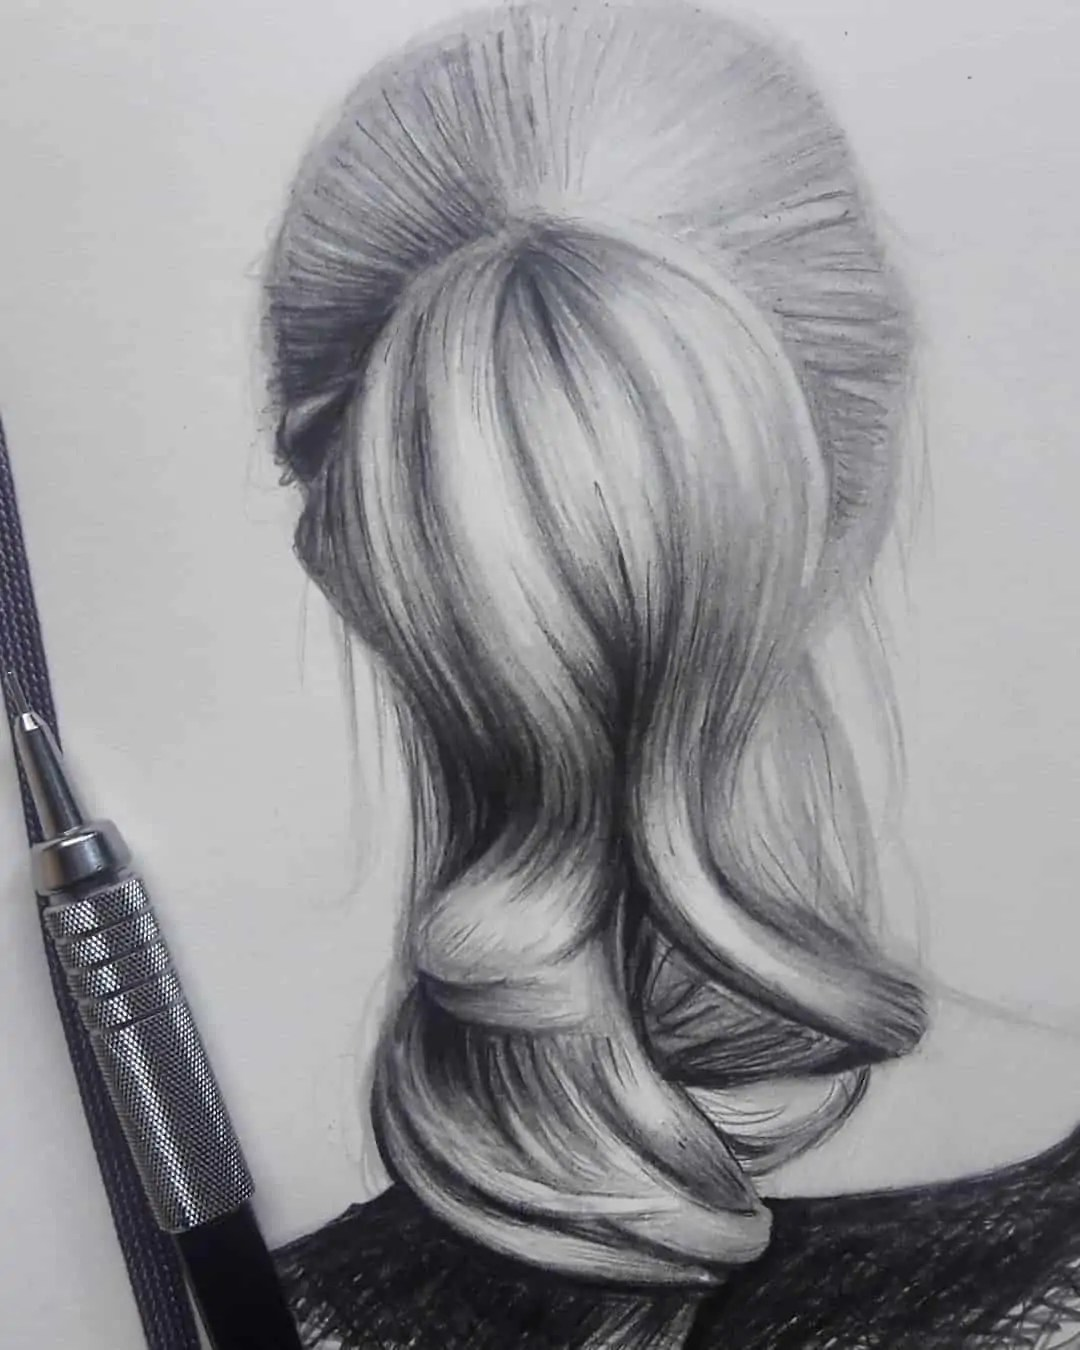 100+ Stunning Realistic Portrait Drawings 253